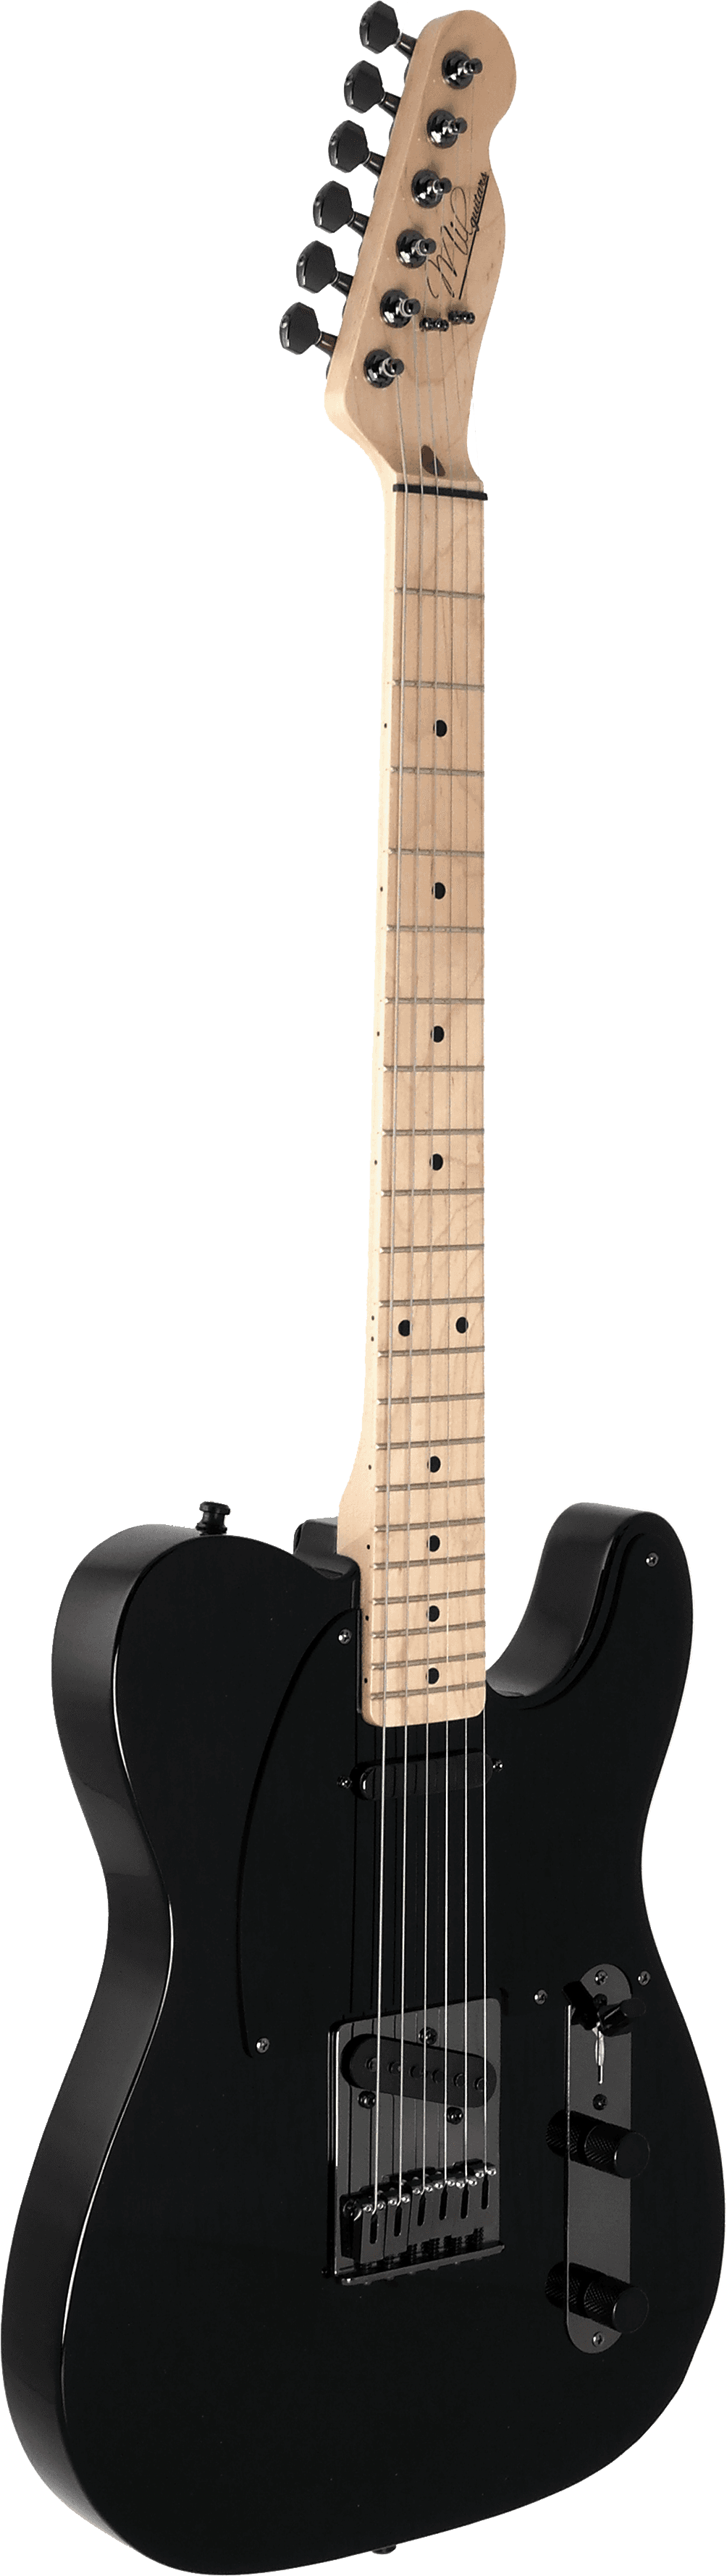 Mil Guitars black T model Bare Knuckles The Boss front